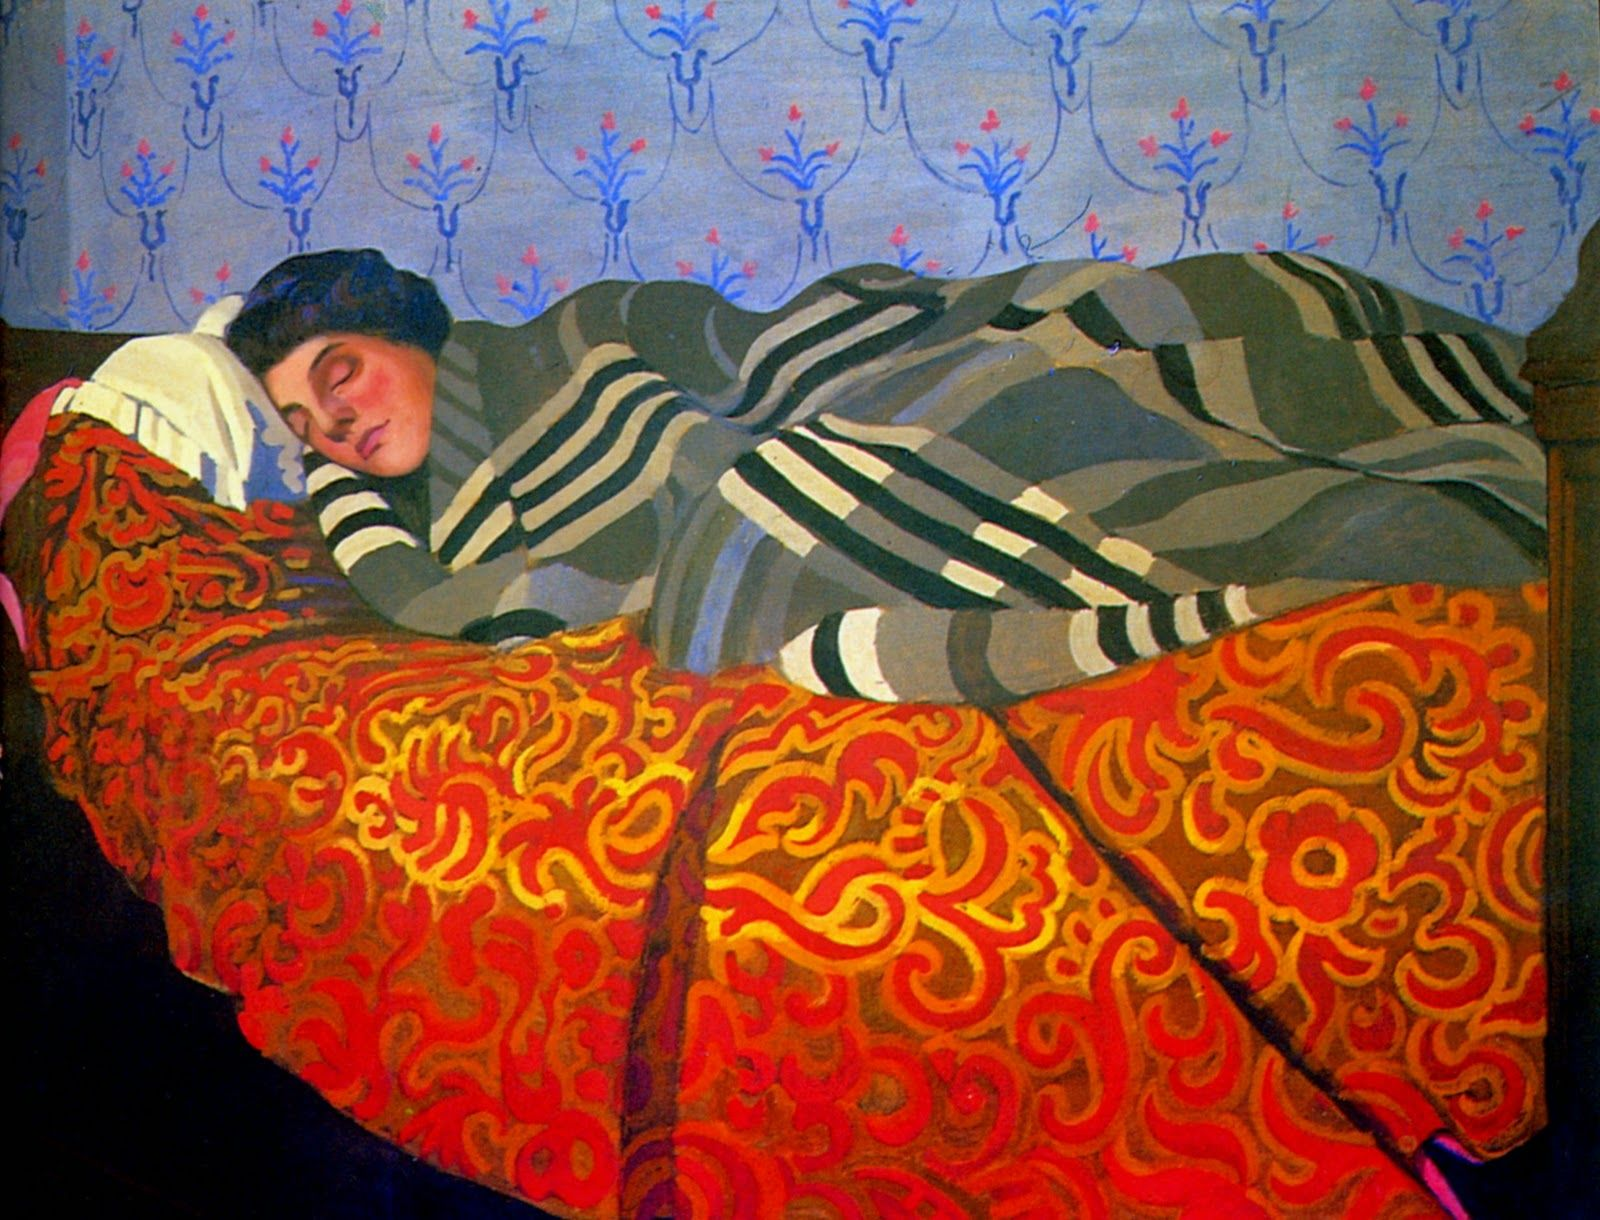 Felix Vallotton 1865 1925 Nabi Painter In 2020 Sleeping Women Art Painting